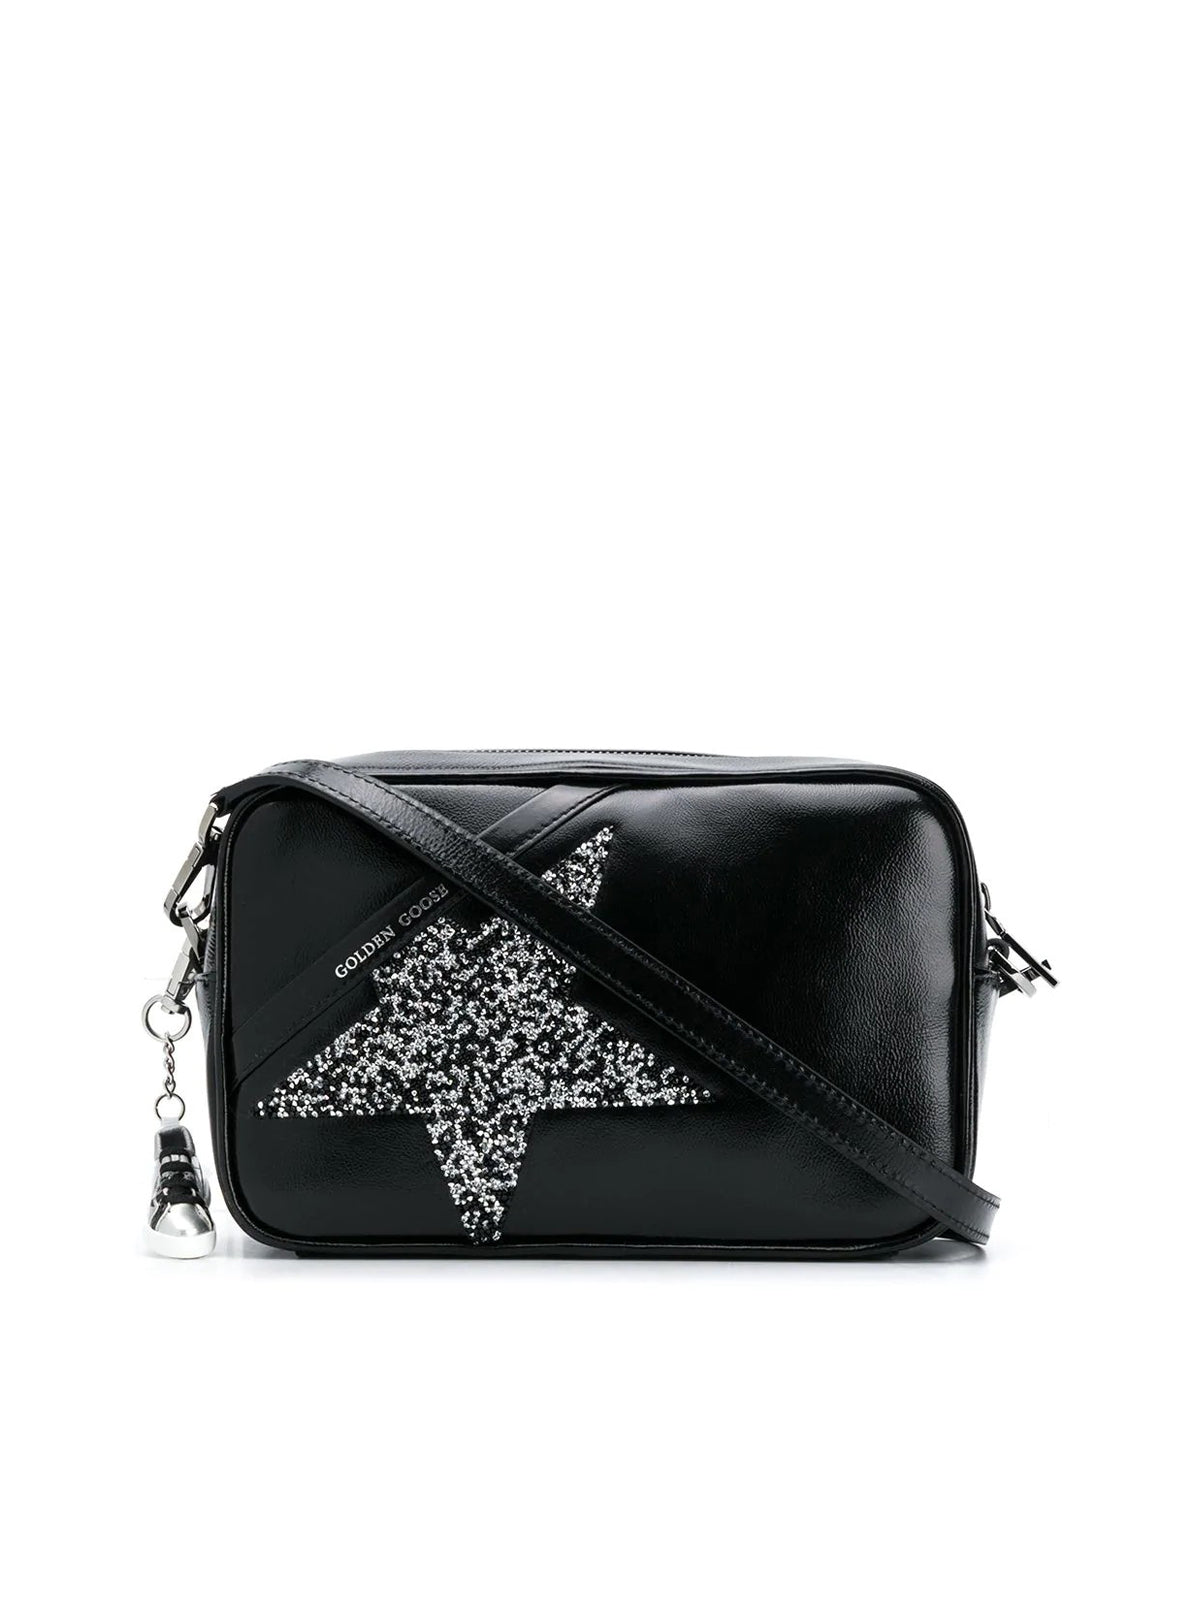 Shoulder bag with glitters